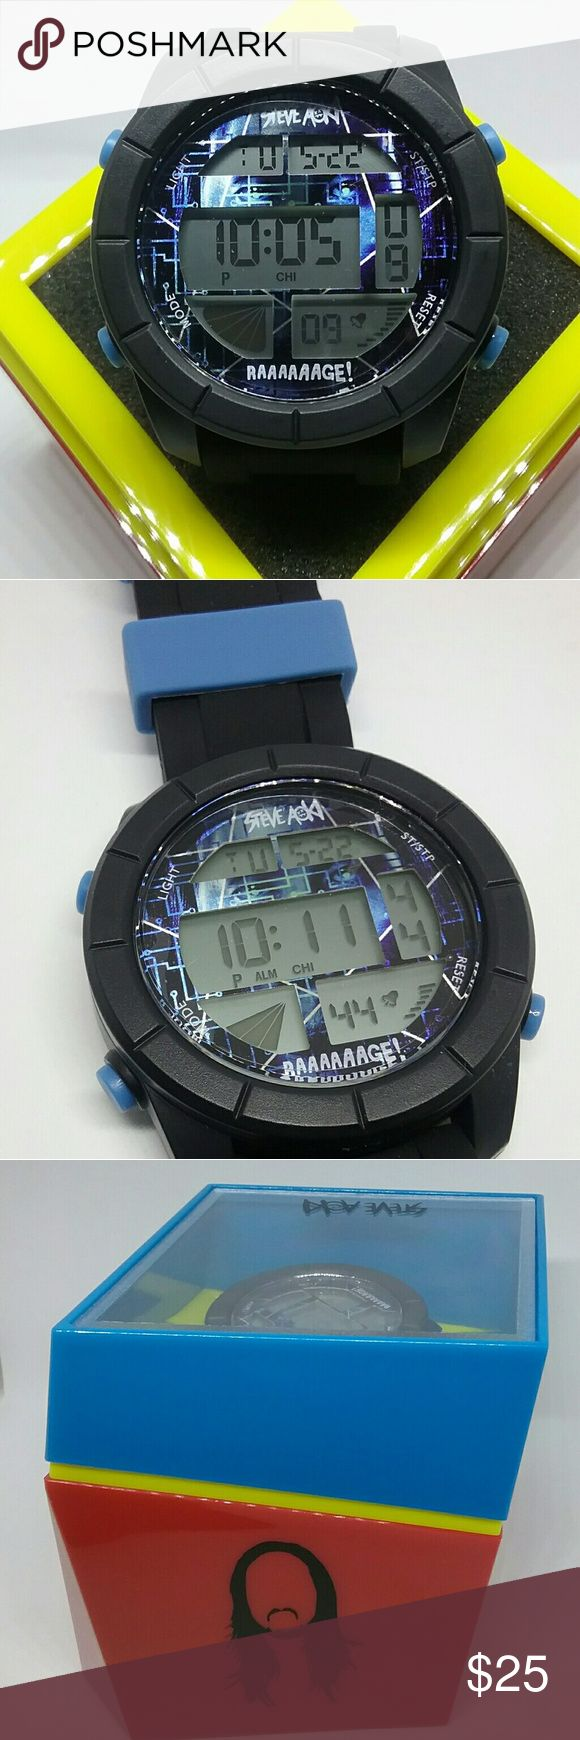 "Super Star DJ Steve Aoki Black Digital Wristwatch Item. New Super Star ""DJ Steve Aoki"" Black Digital Wristwatch  . Color: Black Band & Black Face . Material: Silicone Rubber Wristband  . Brand. Official  Steve Aoki Merchandise Accessories Watches"